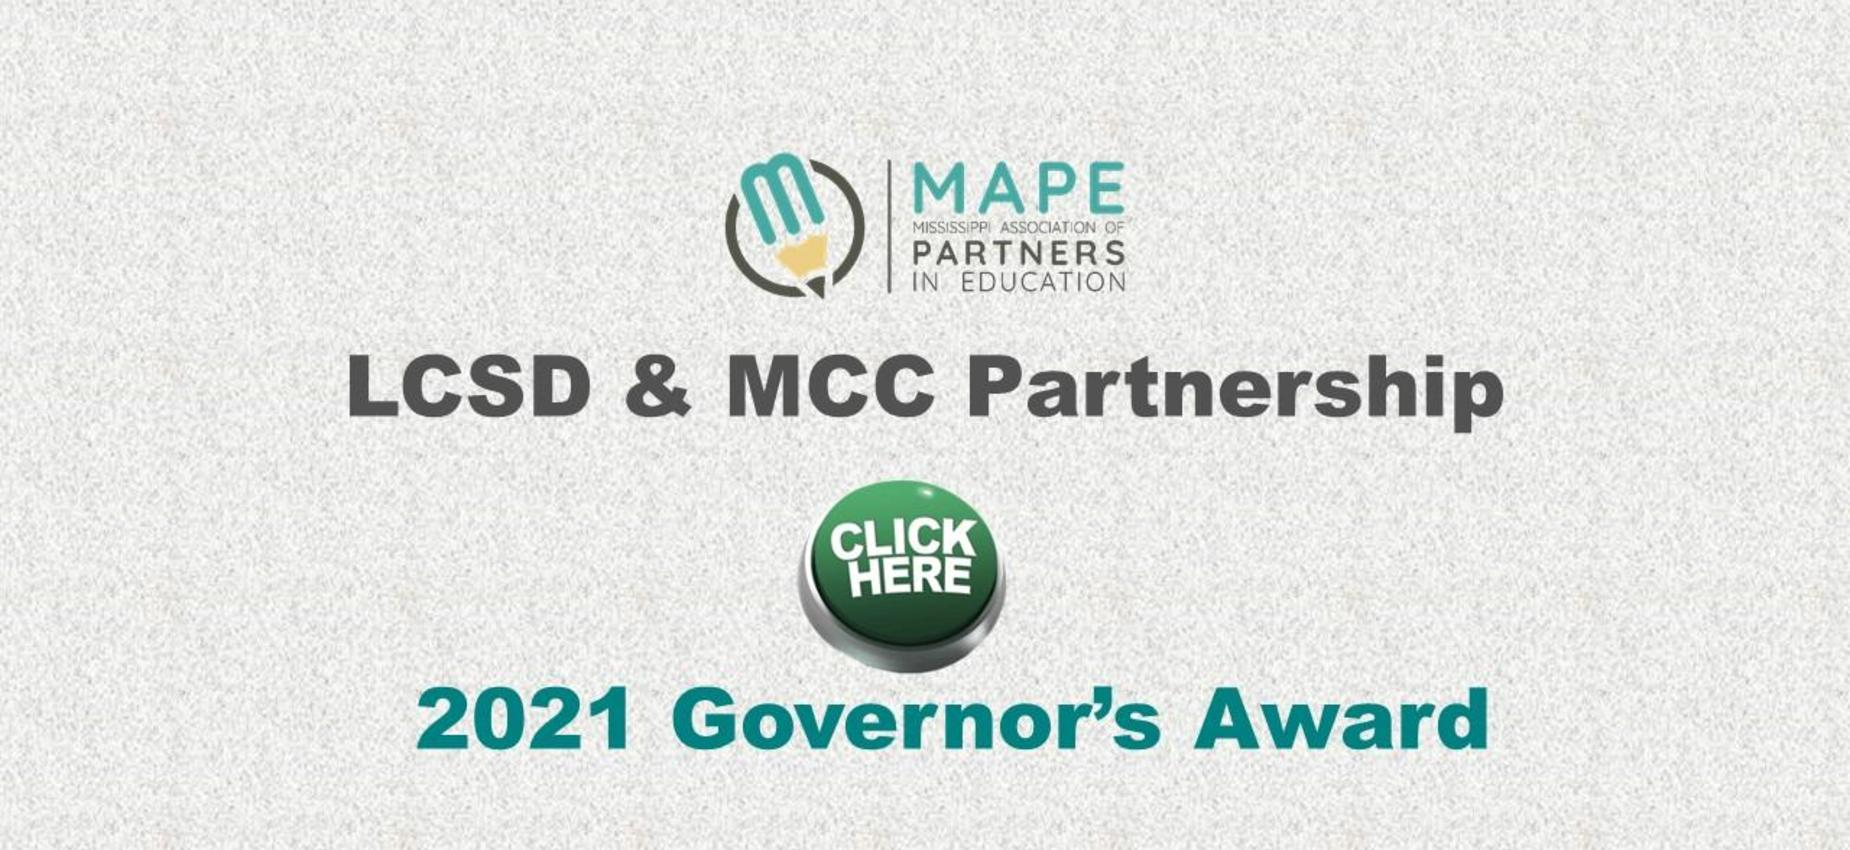 LCSD/MCC Governor's Award Graphic